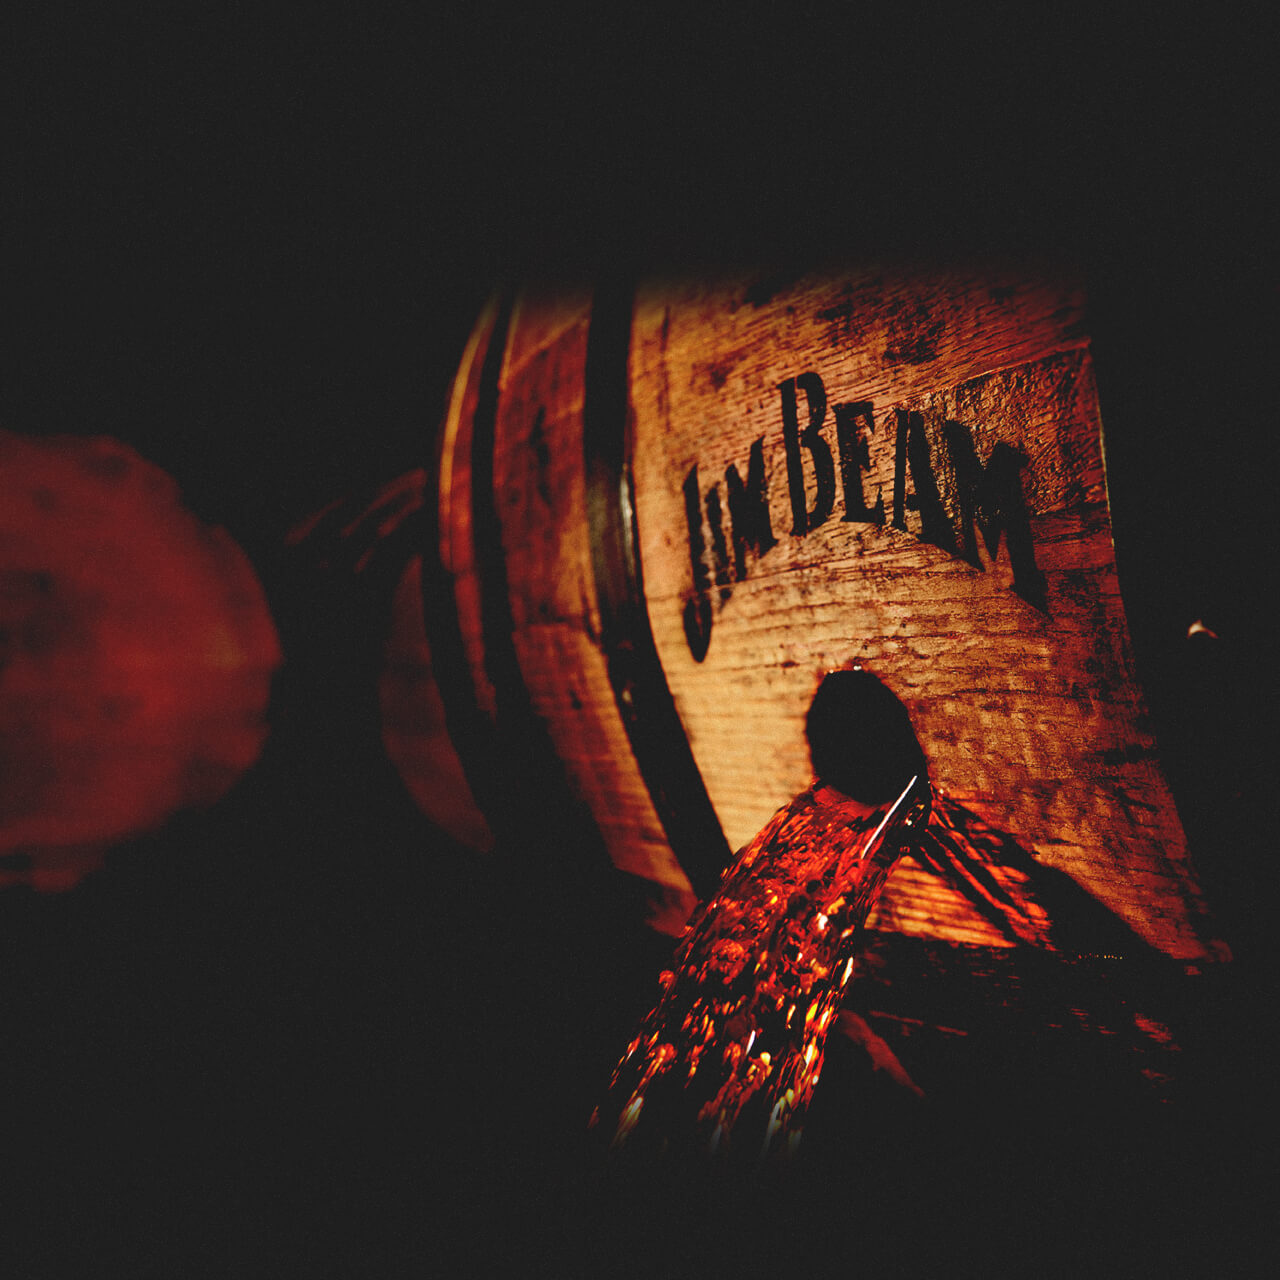 Jim Beam® Whiskey pouring from a Barrel.